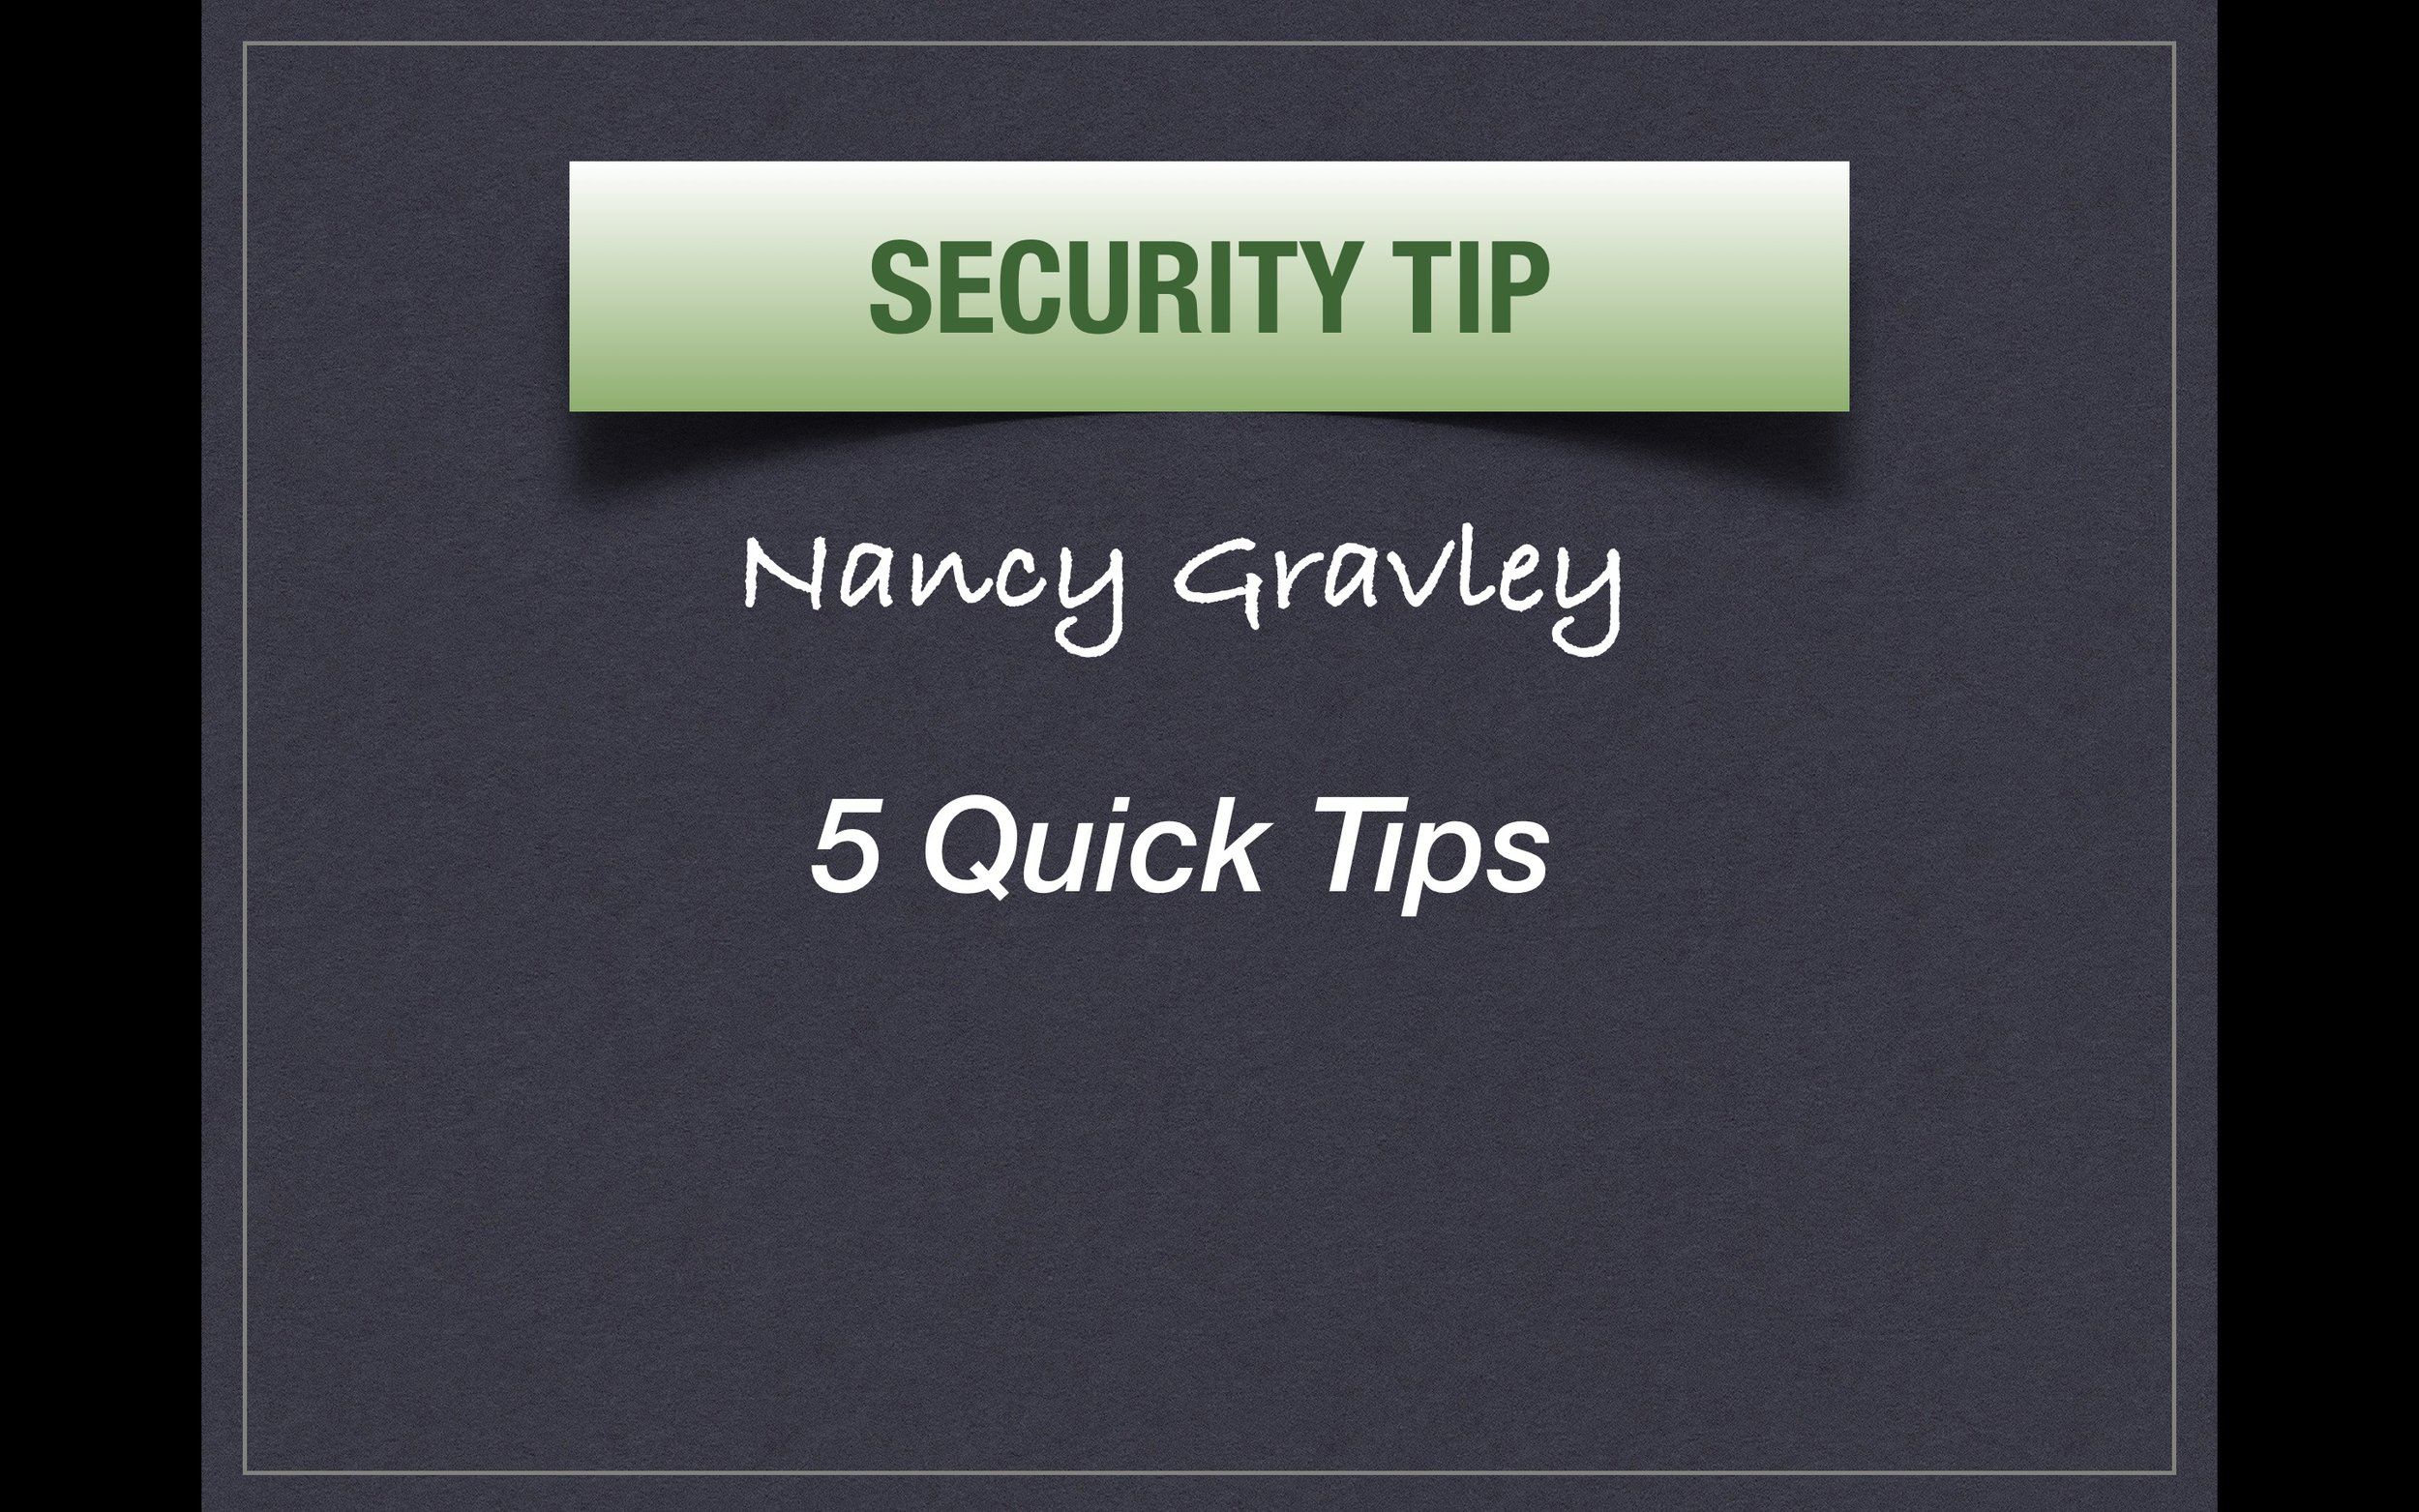 5 Quick Security Tips Title Page